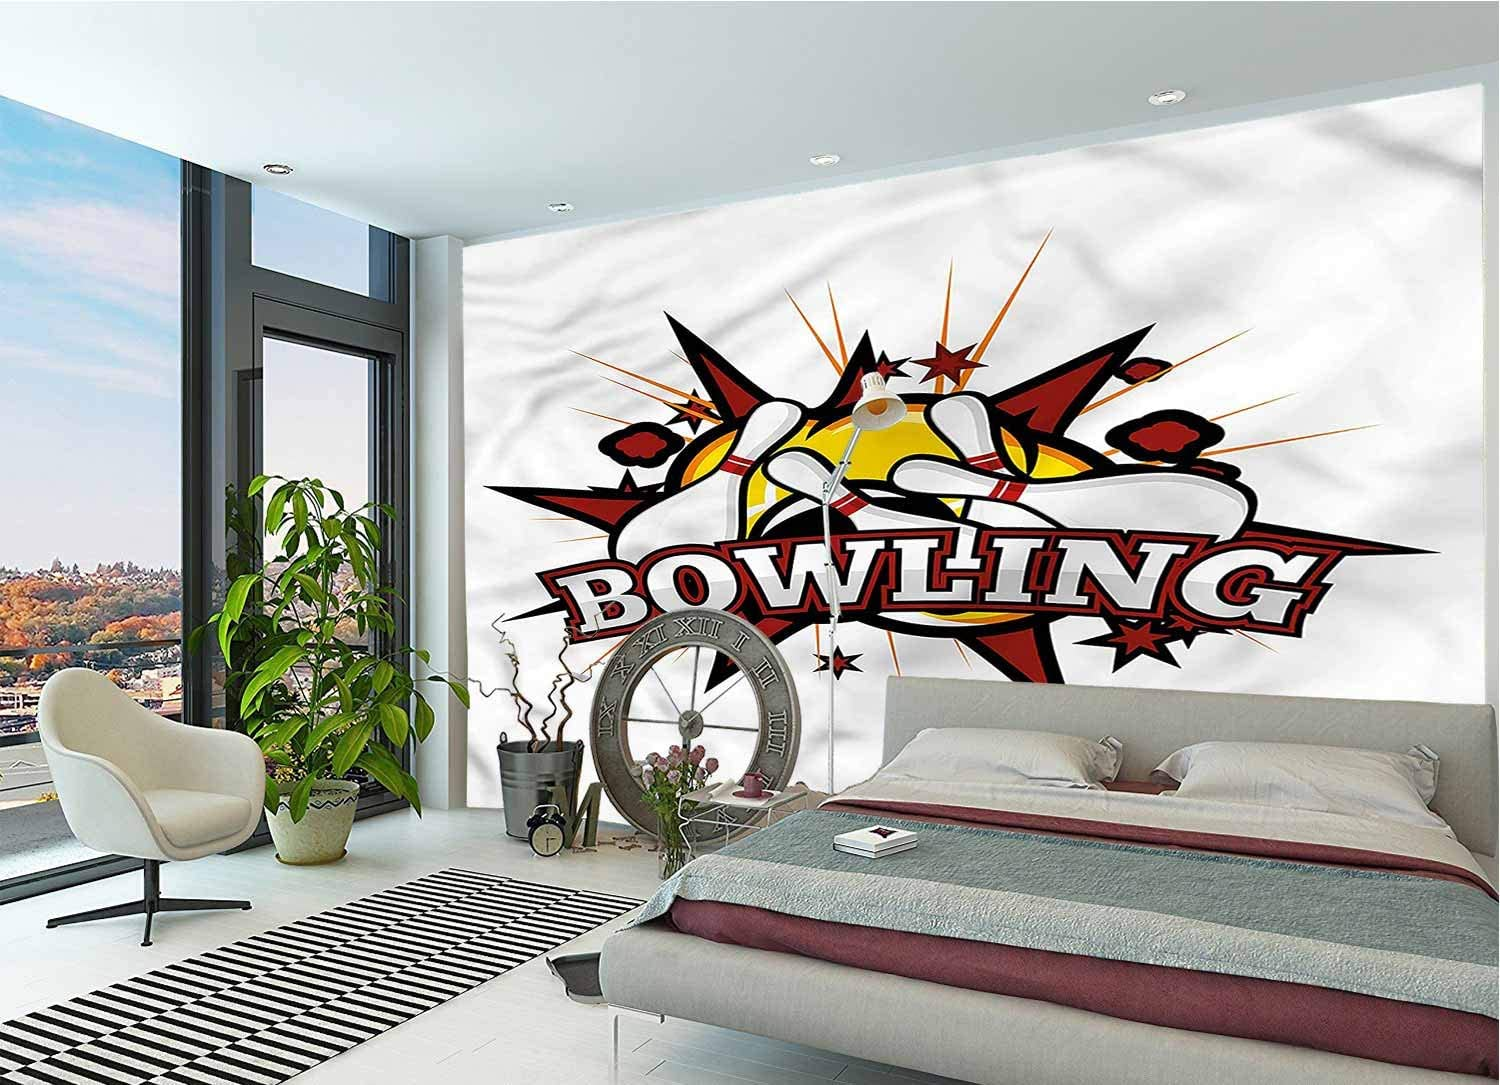 Bowling Party DIY Wall Murals,Cartoon Retro Crash Self-Adhesive Wallpaper for Living Room Bedroom Office Decoration-78x55 Inch